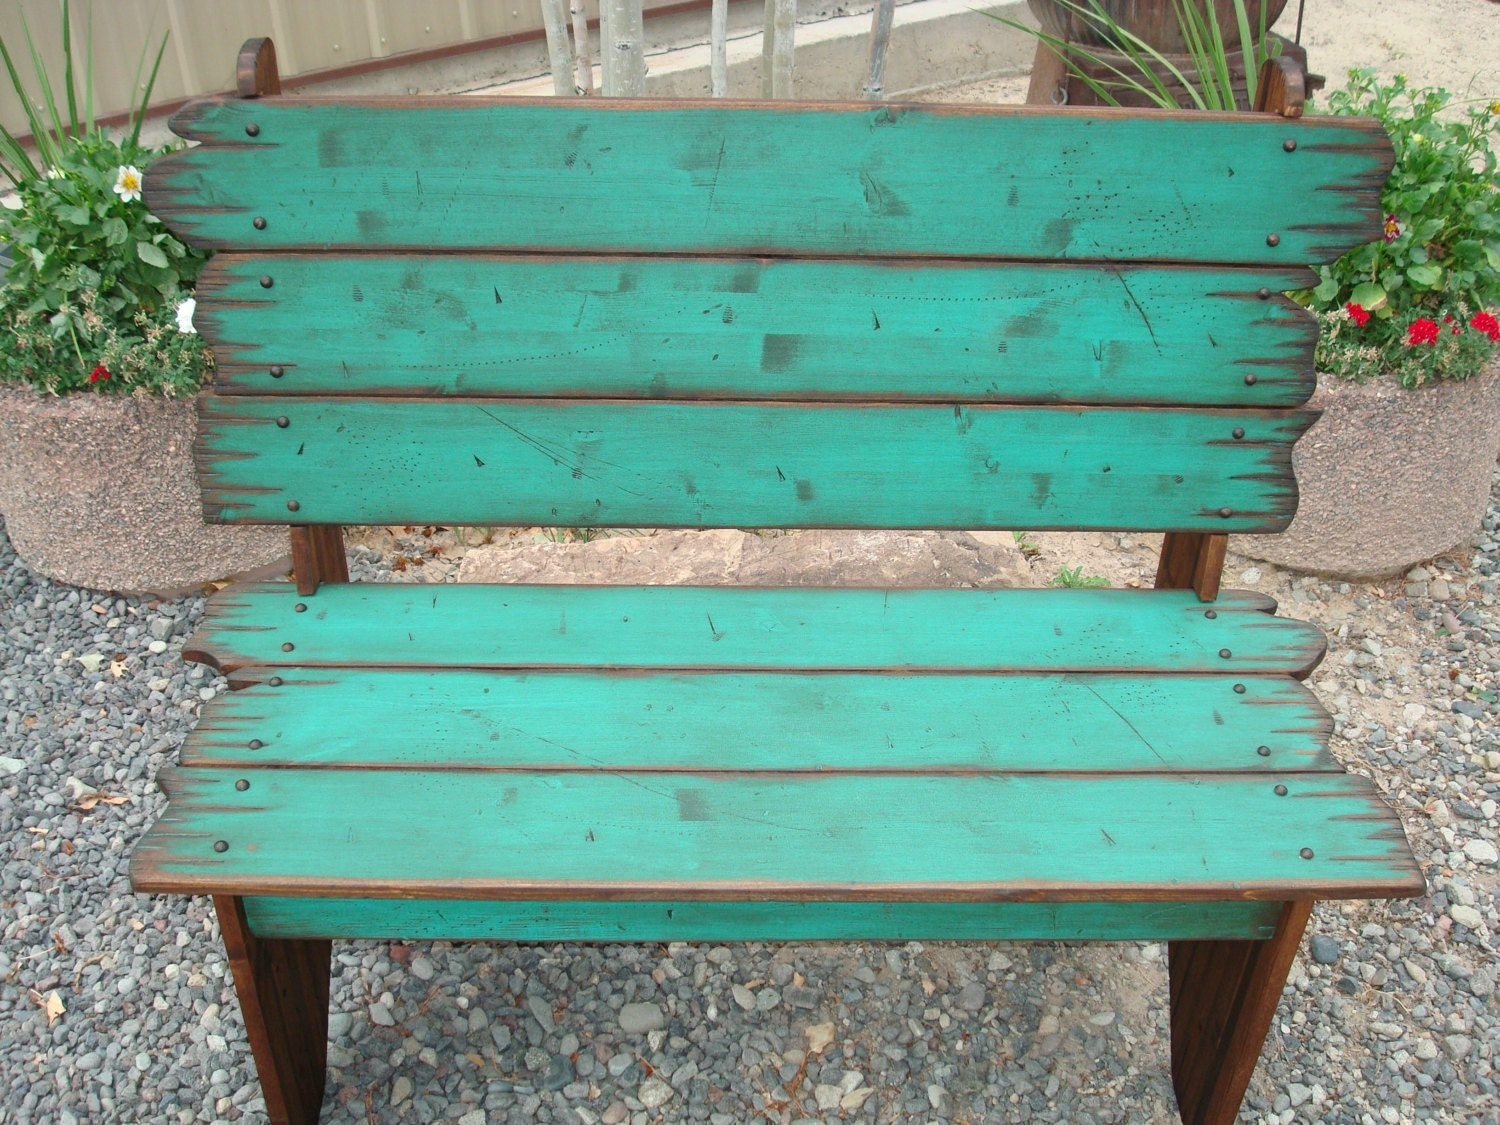 Wood Barn Wood Bench Bench Western Bench Rustic Bench